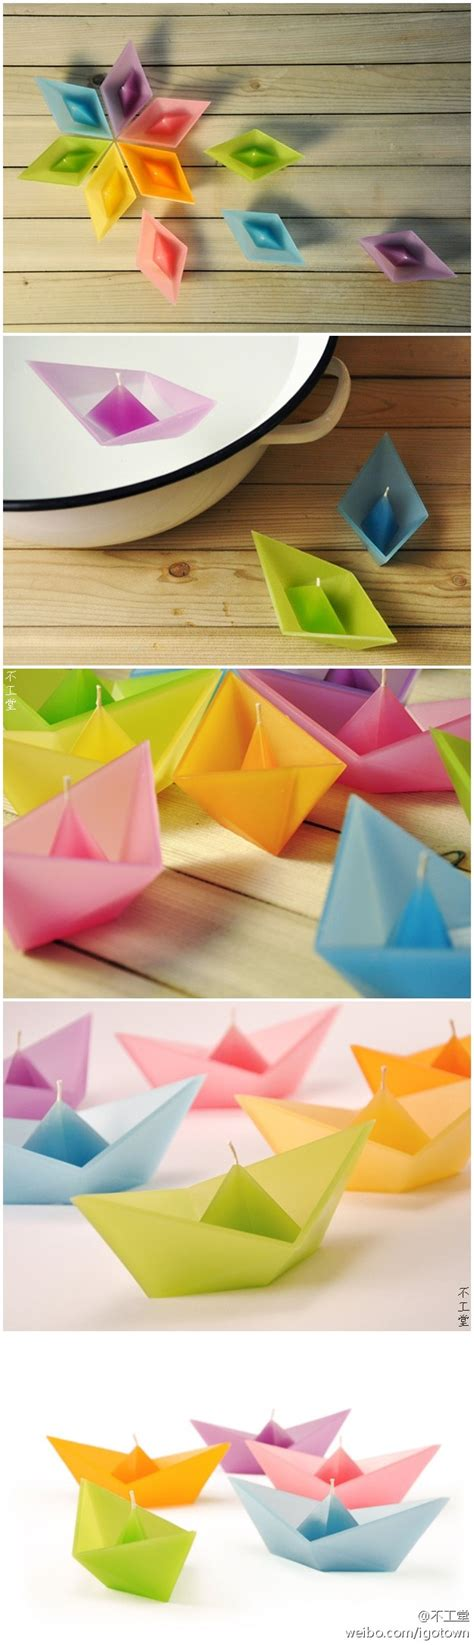 Origami Boat Candles - pin by wendy hathaway on ls lanterns lighting